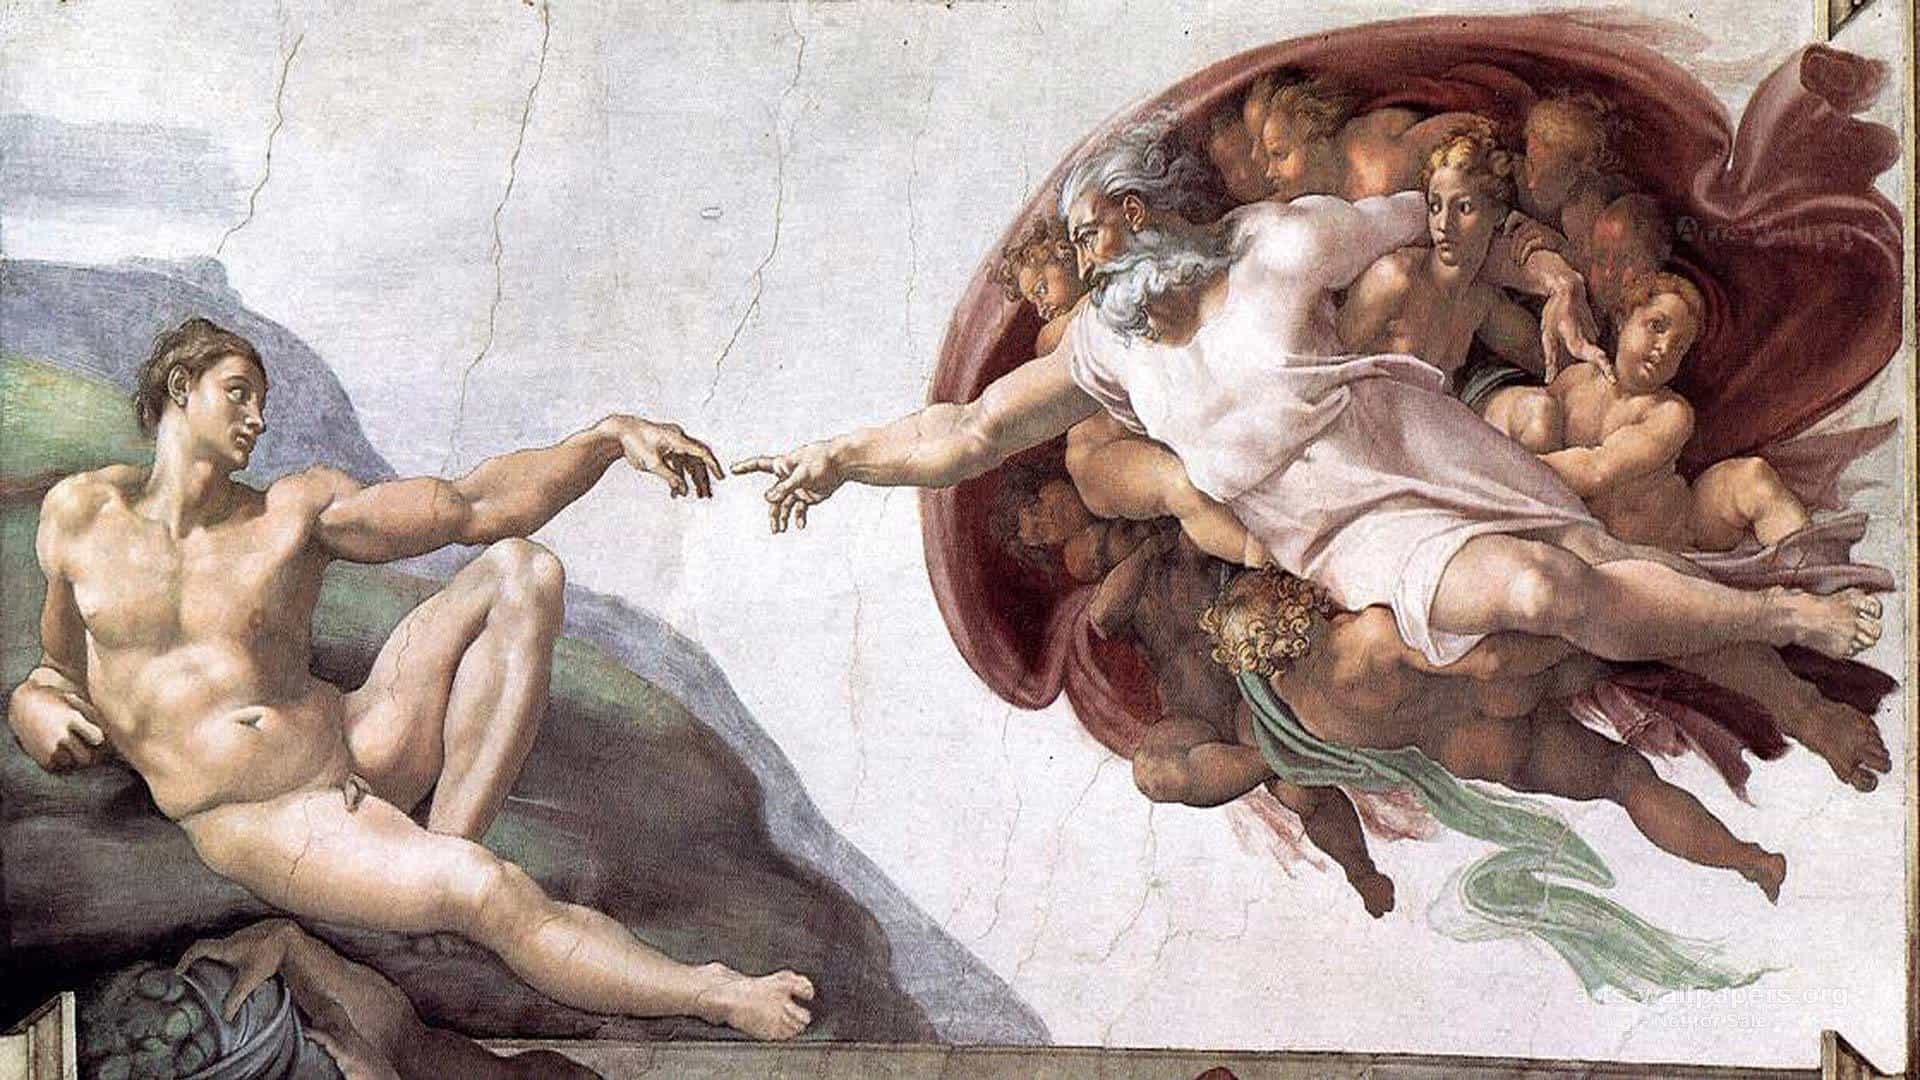 Michelangelo's 'Creation of Adam' paradox | Paradox of the day .com